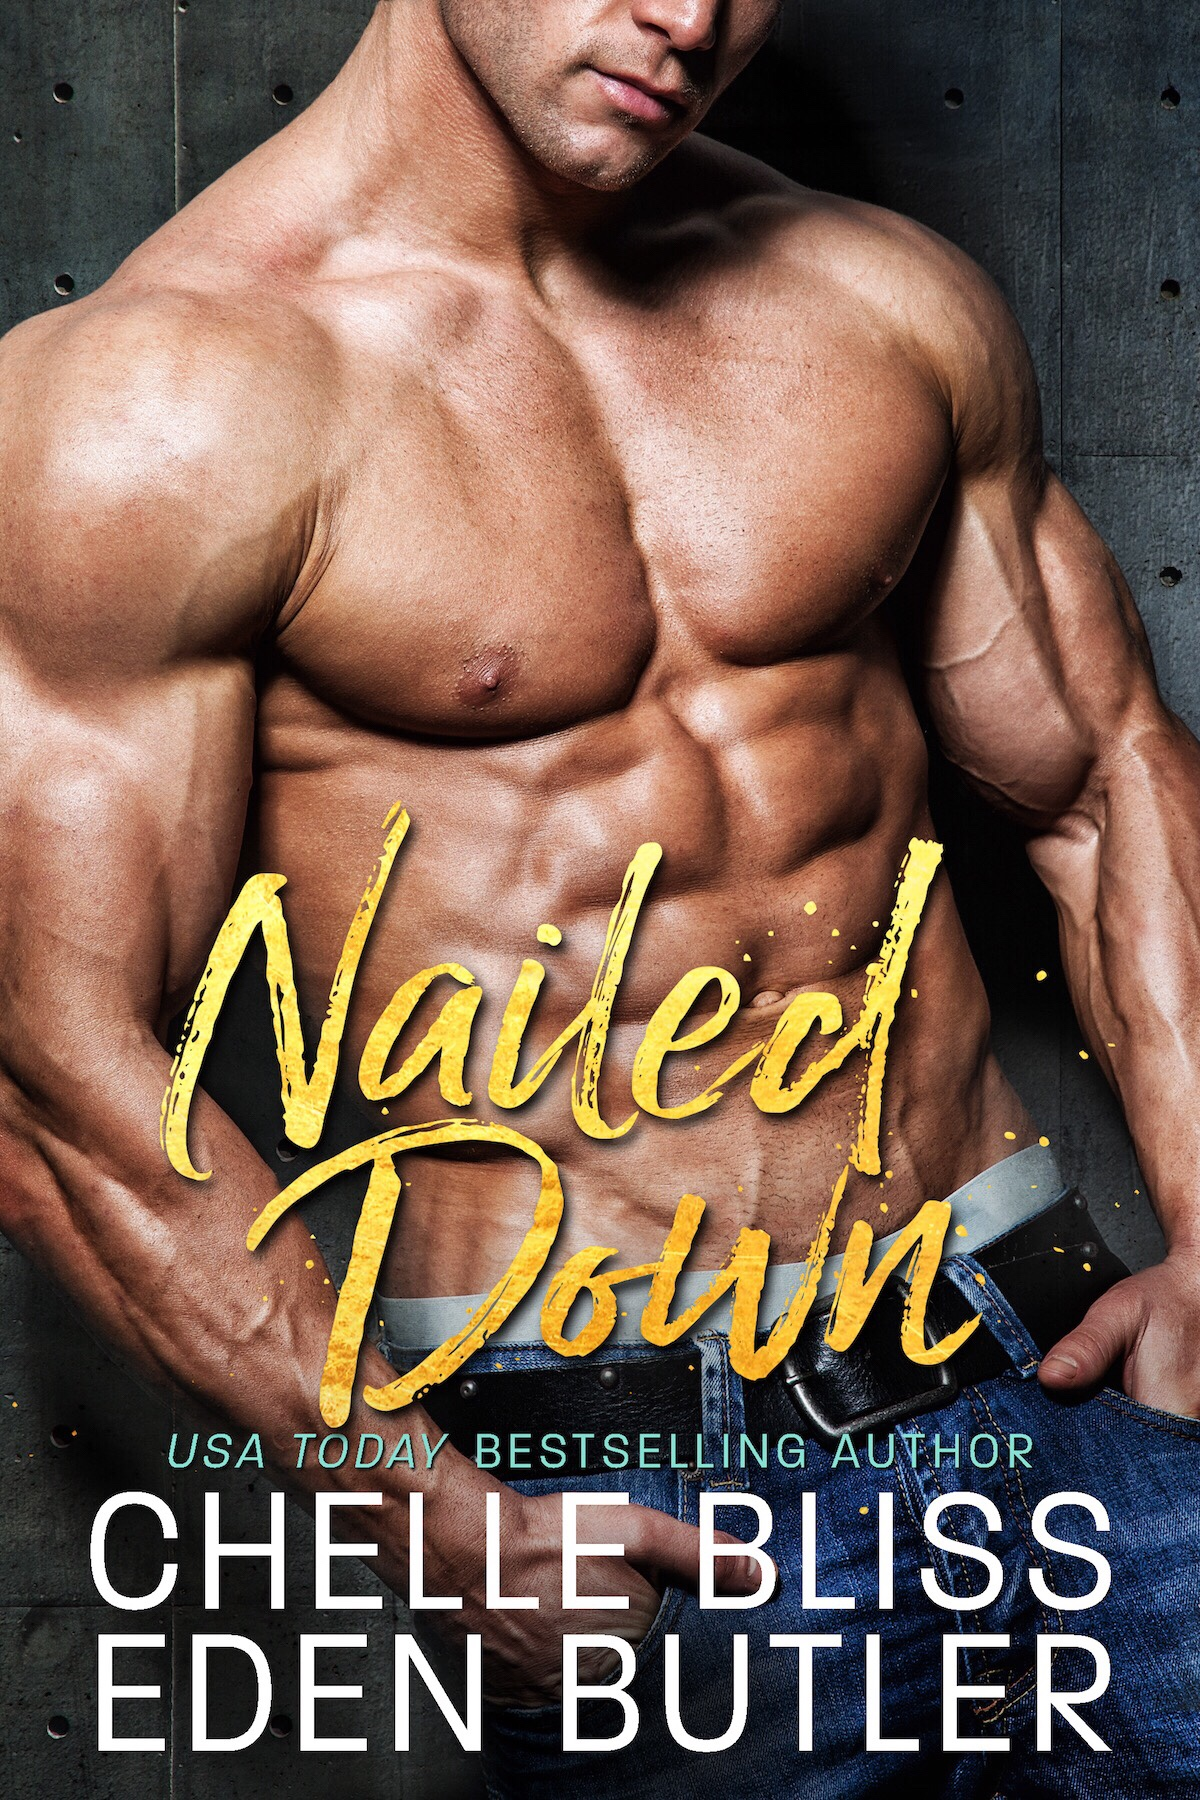 Review: Nailed Down (Nailed Down #1) by Chelle Bliss and Eden Butler